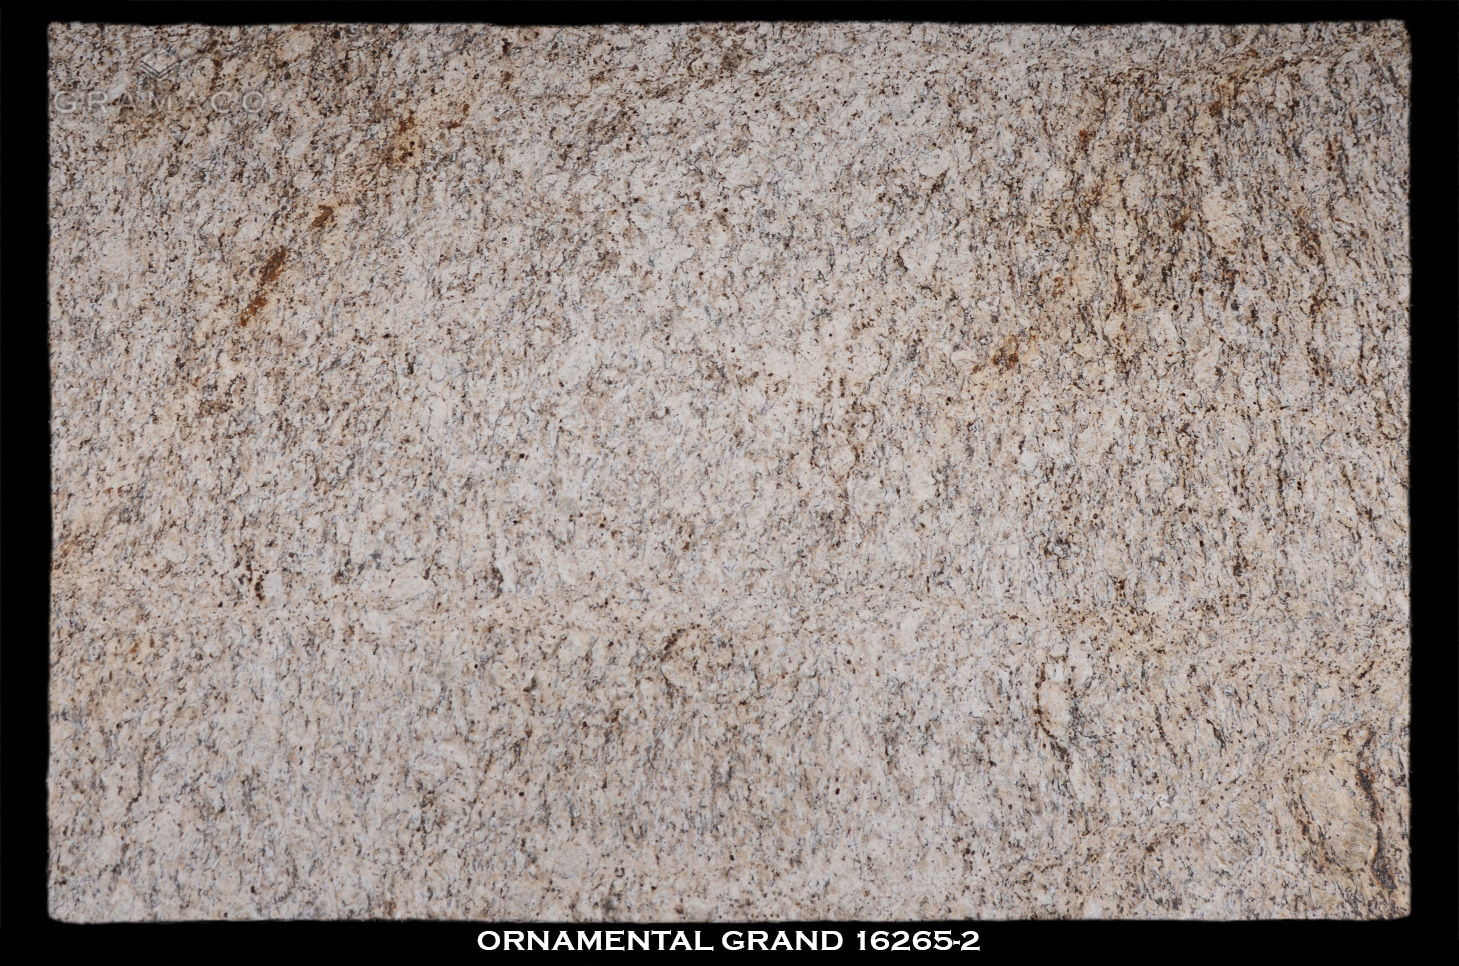 Ornamental-Grand-16265-2-slab